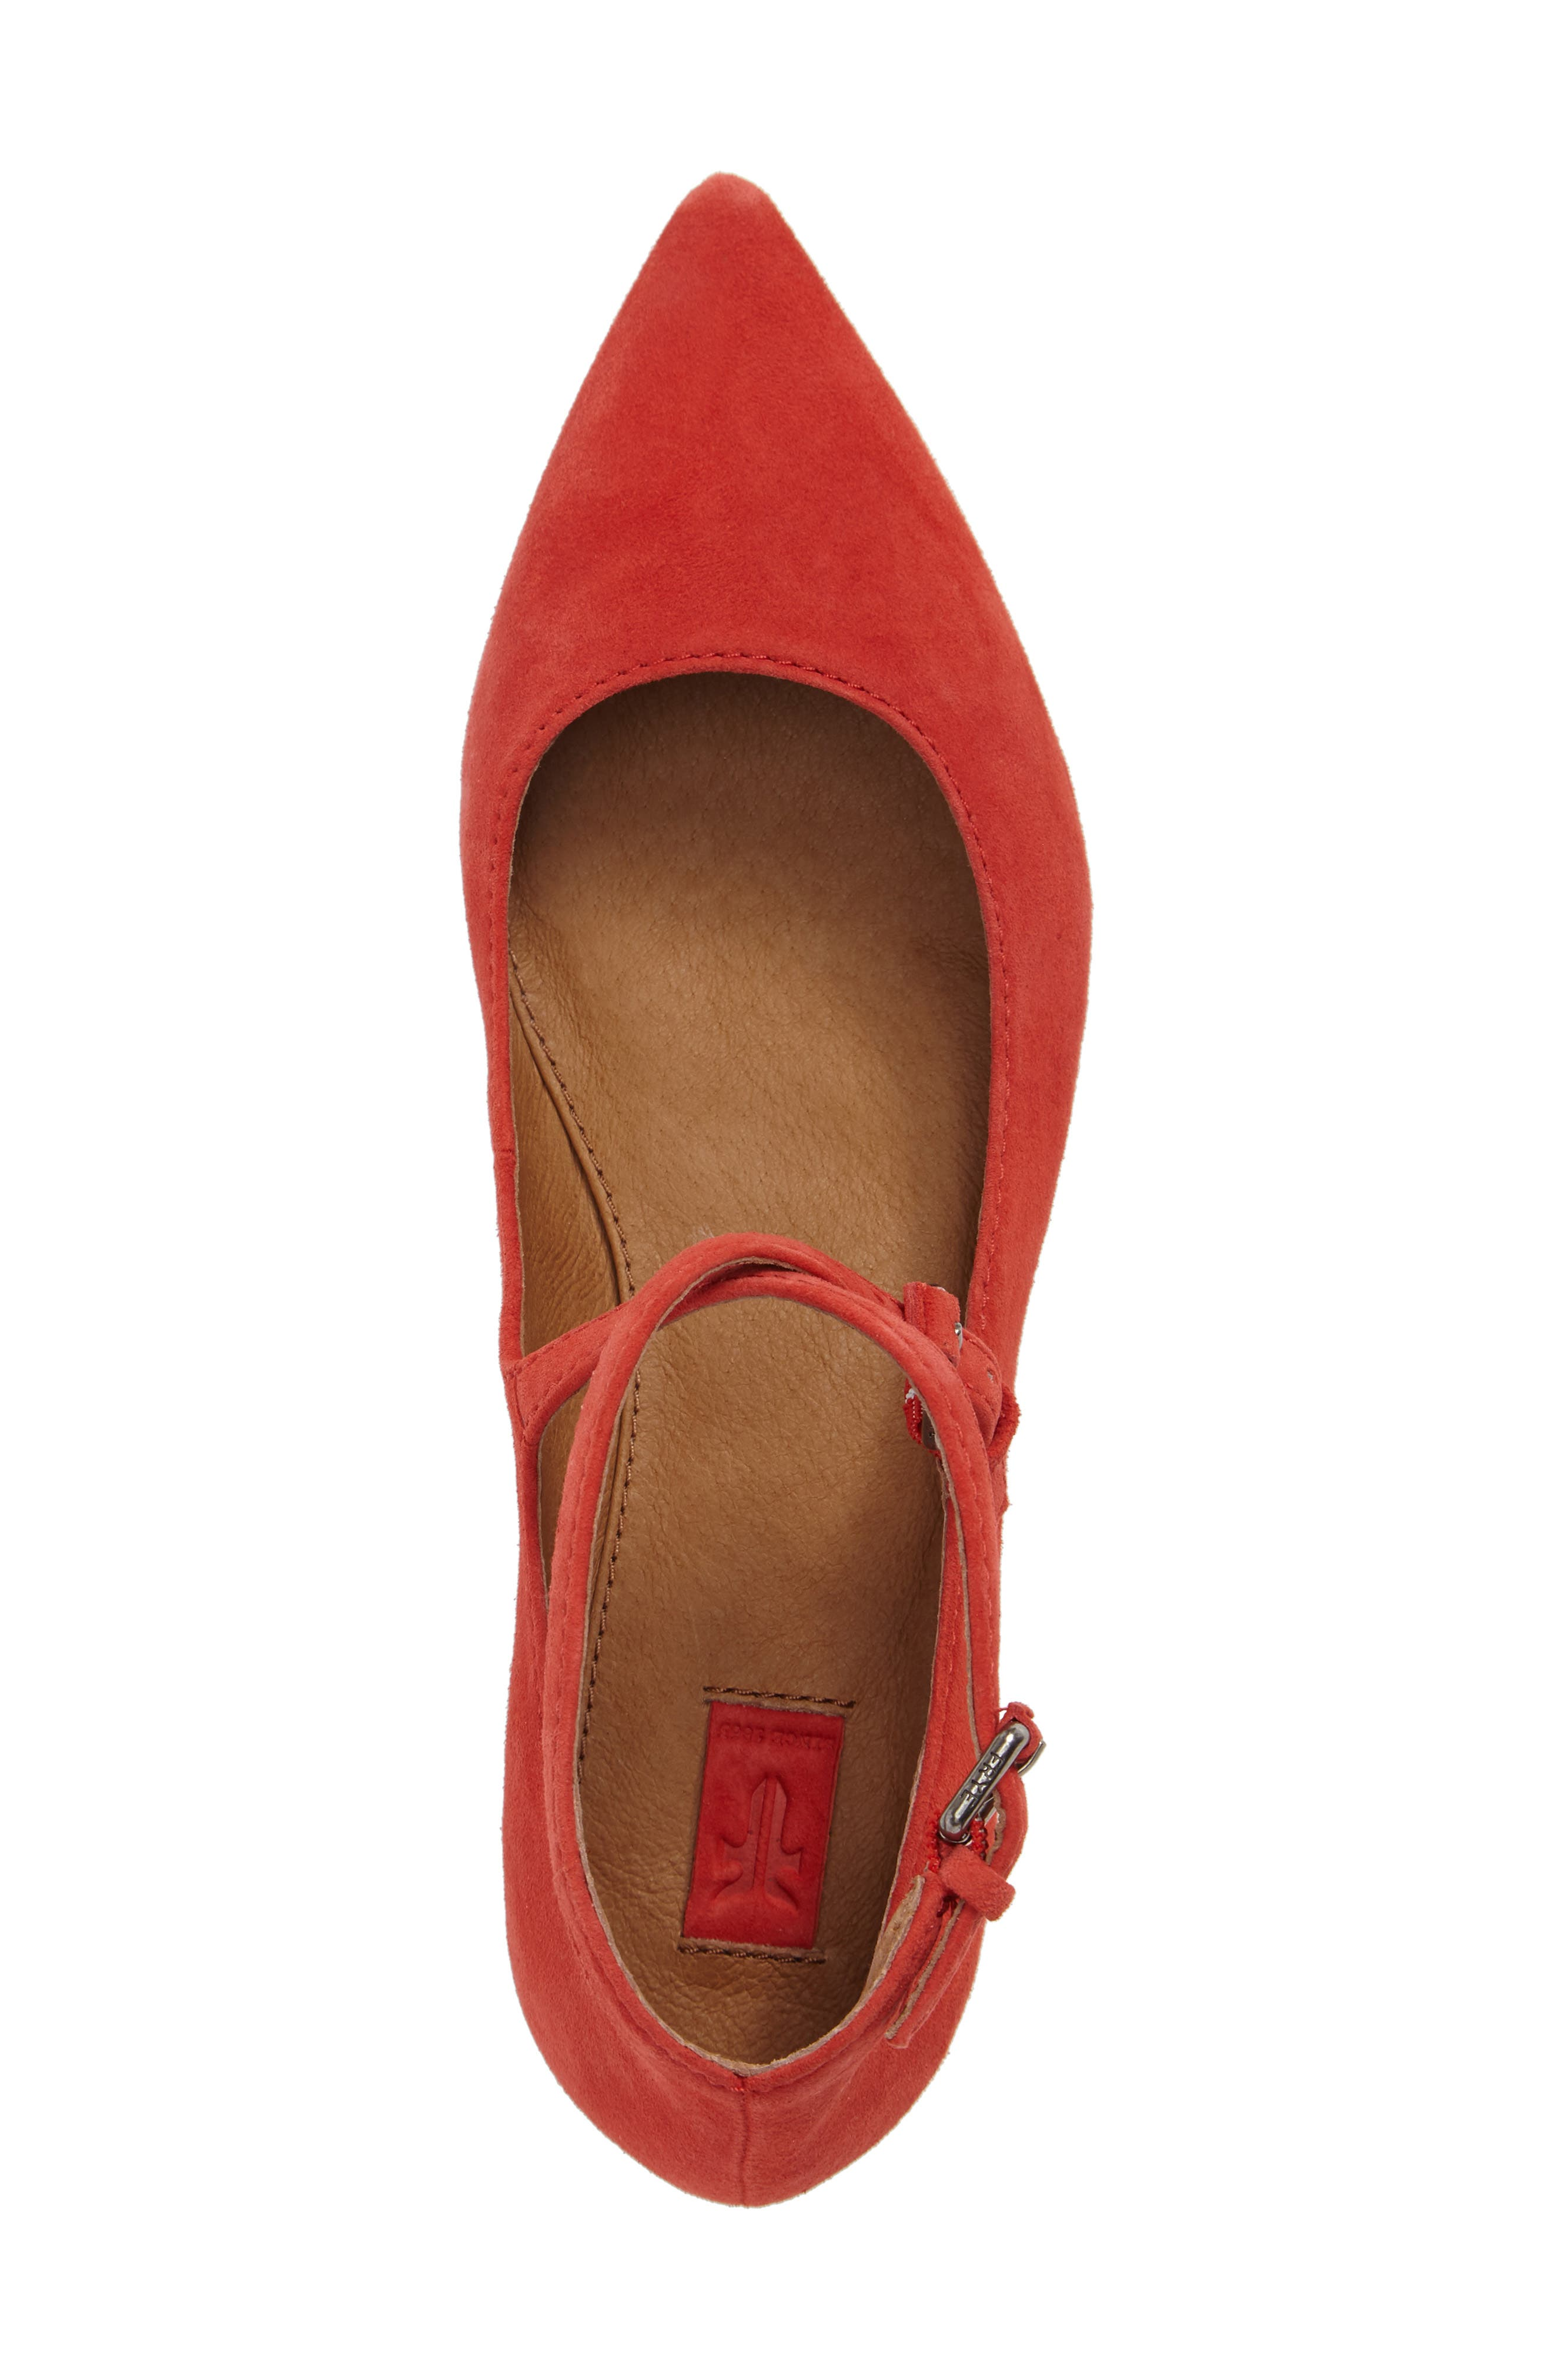 Sienna Cross Ballet Flat,                             Alternate thumbnail 13, color,